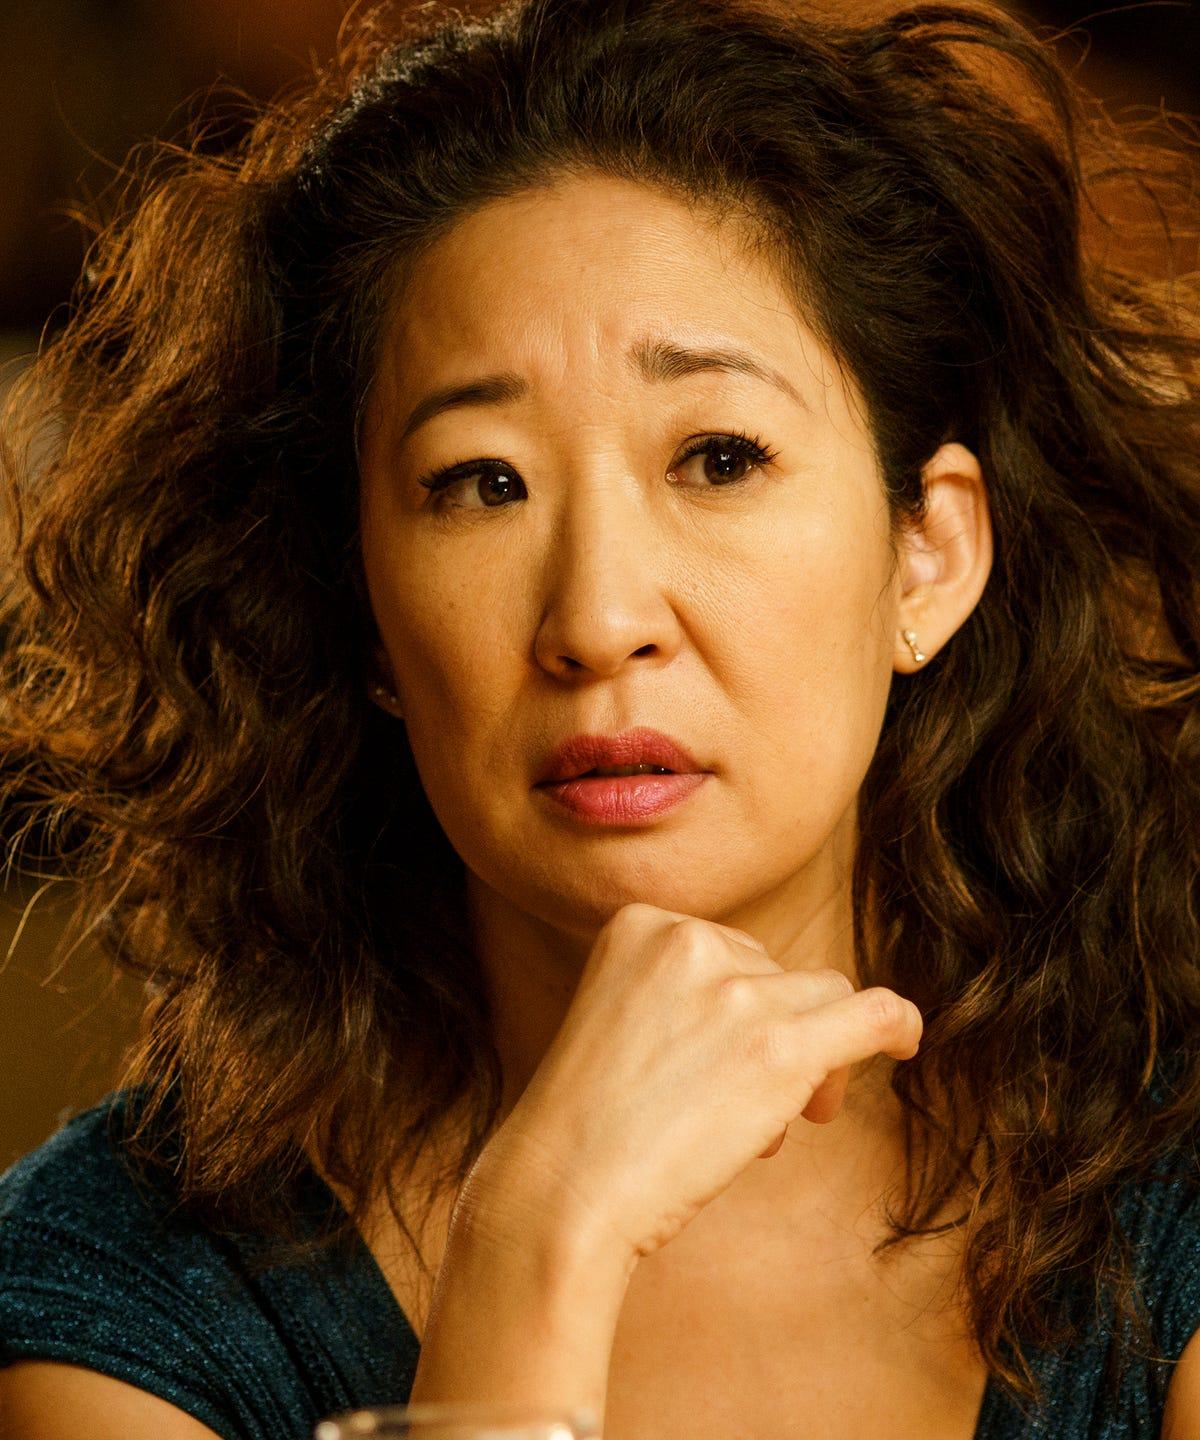 Who Is Anna On Killing Eve? Hair Unlocks Major Mystery